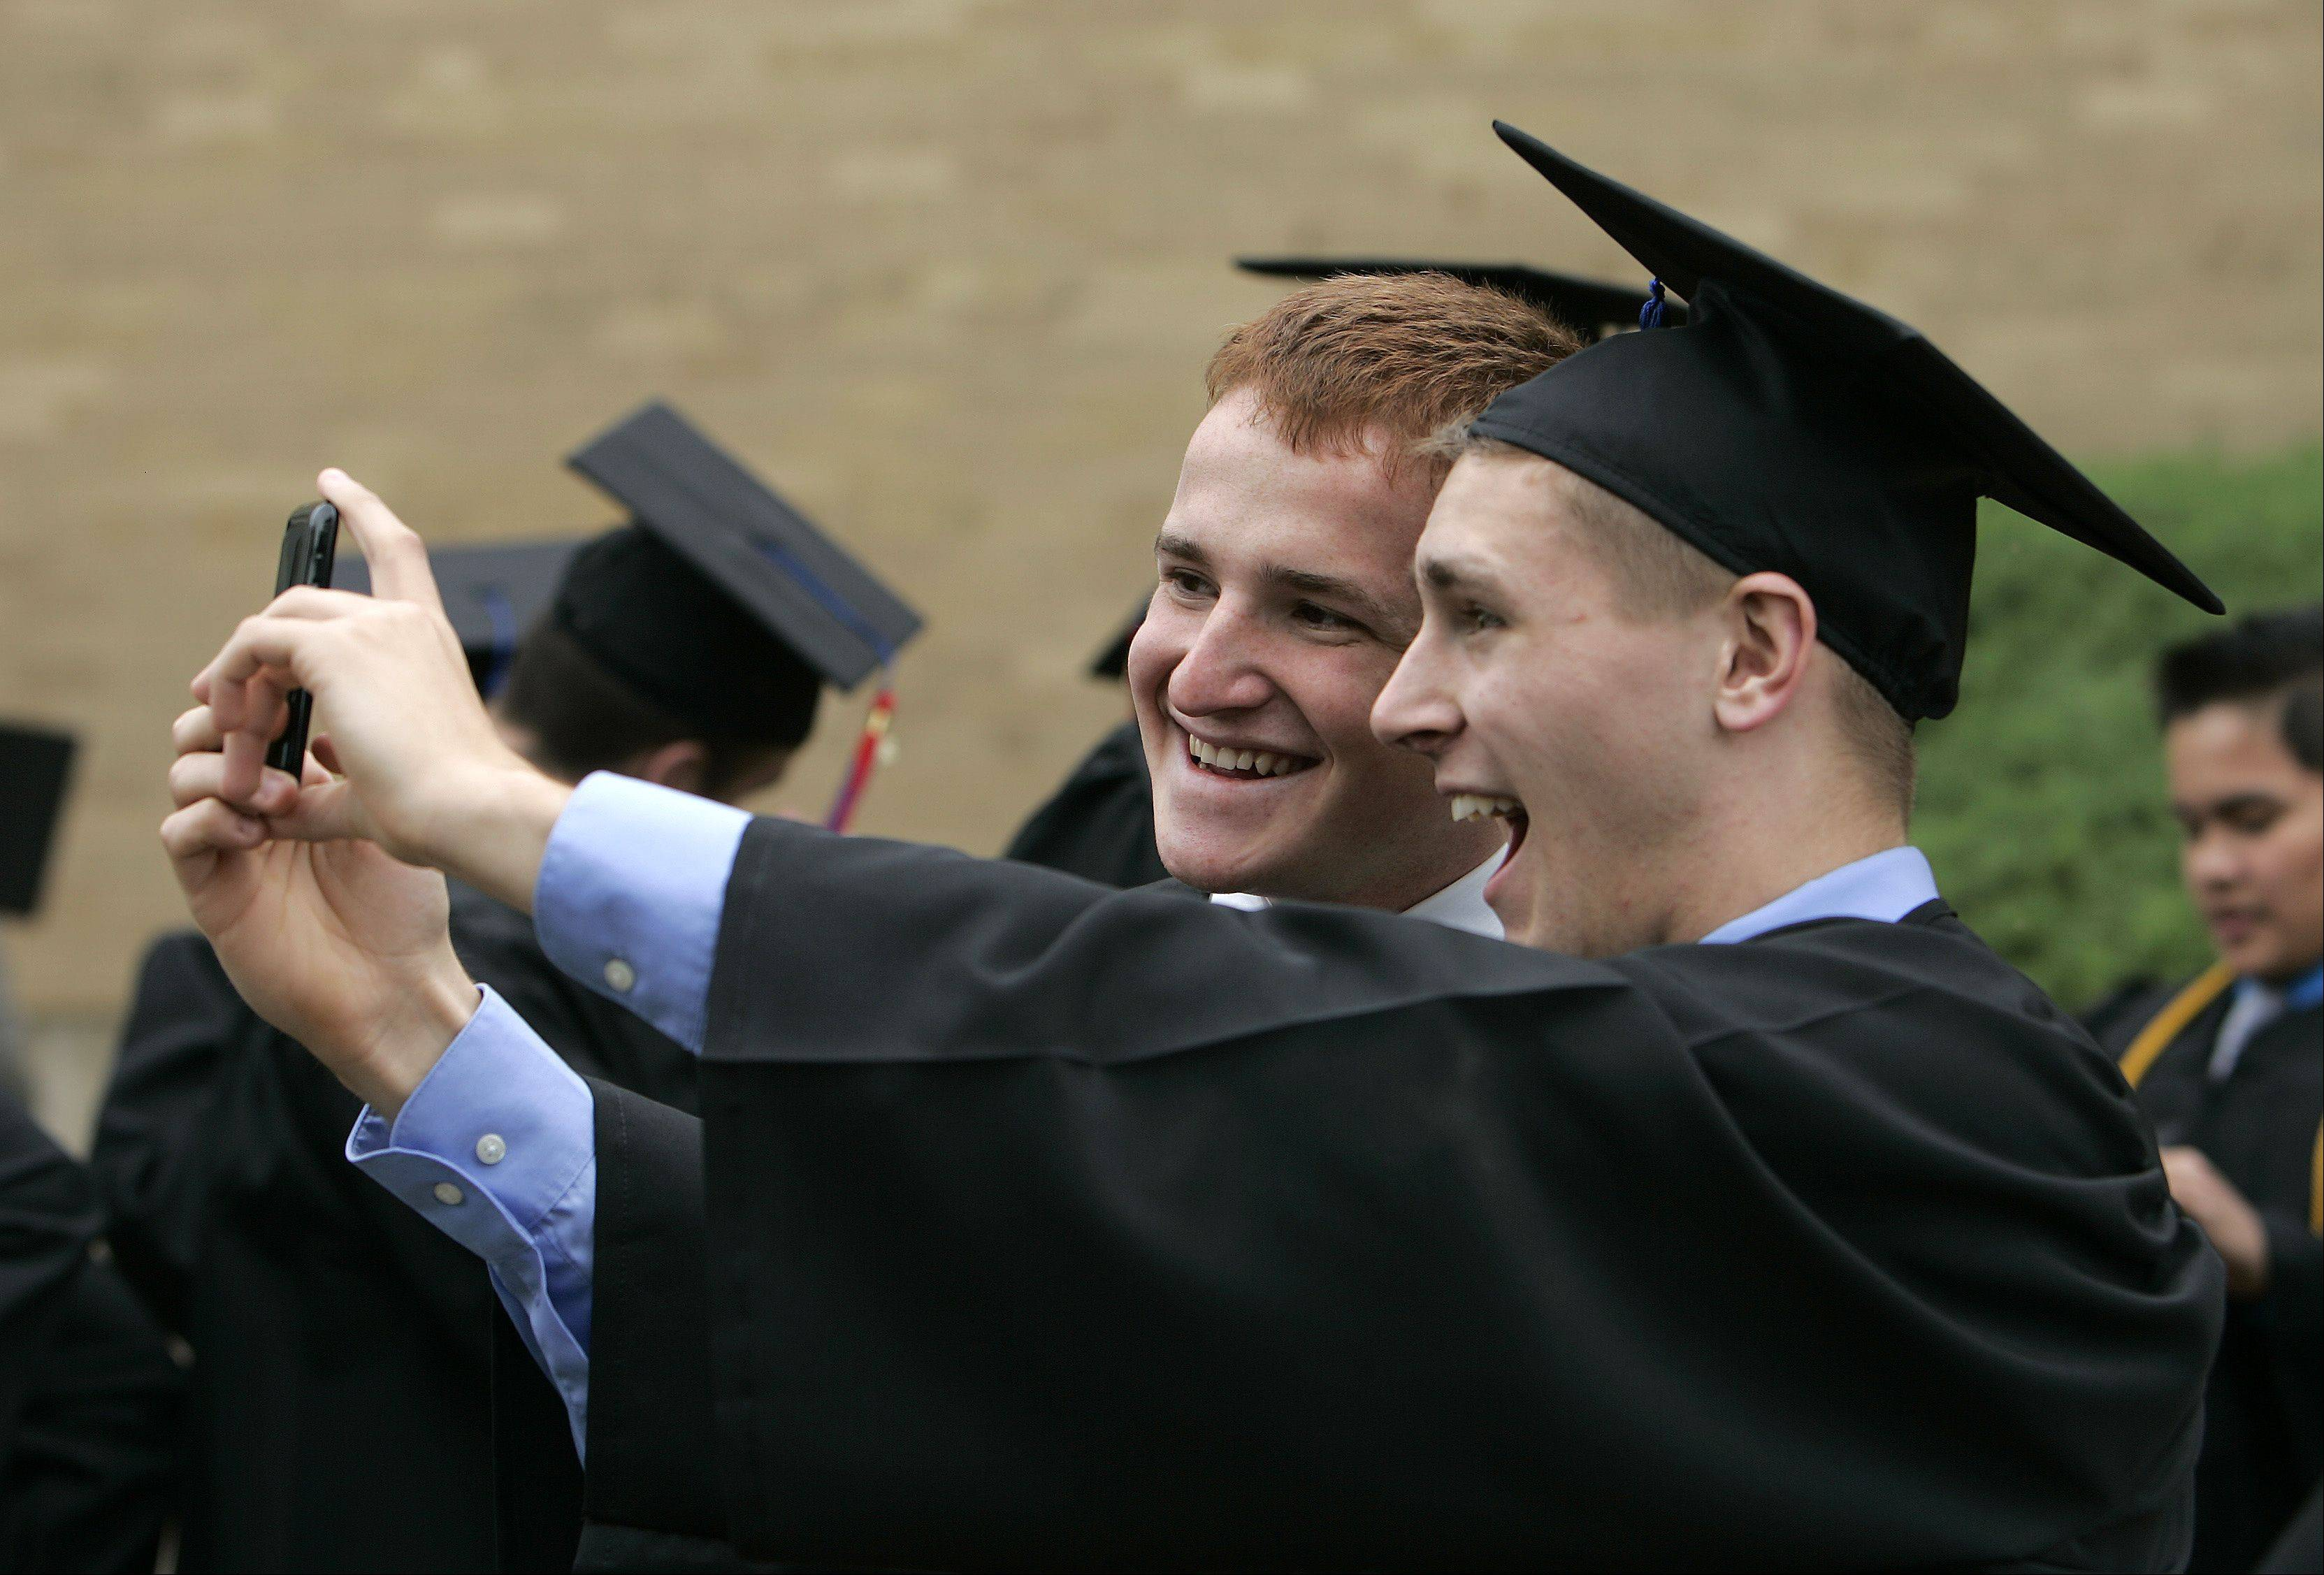 Brian Winkel, left, and Stuart Kofron, both of Batavia, snap a quick cellphone picture prior to Marmion Academy's 79th commencement exercises Sunday, May 26, 2013 in Aurora.